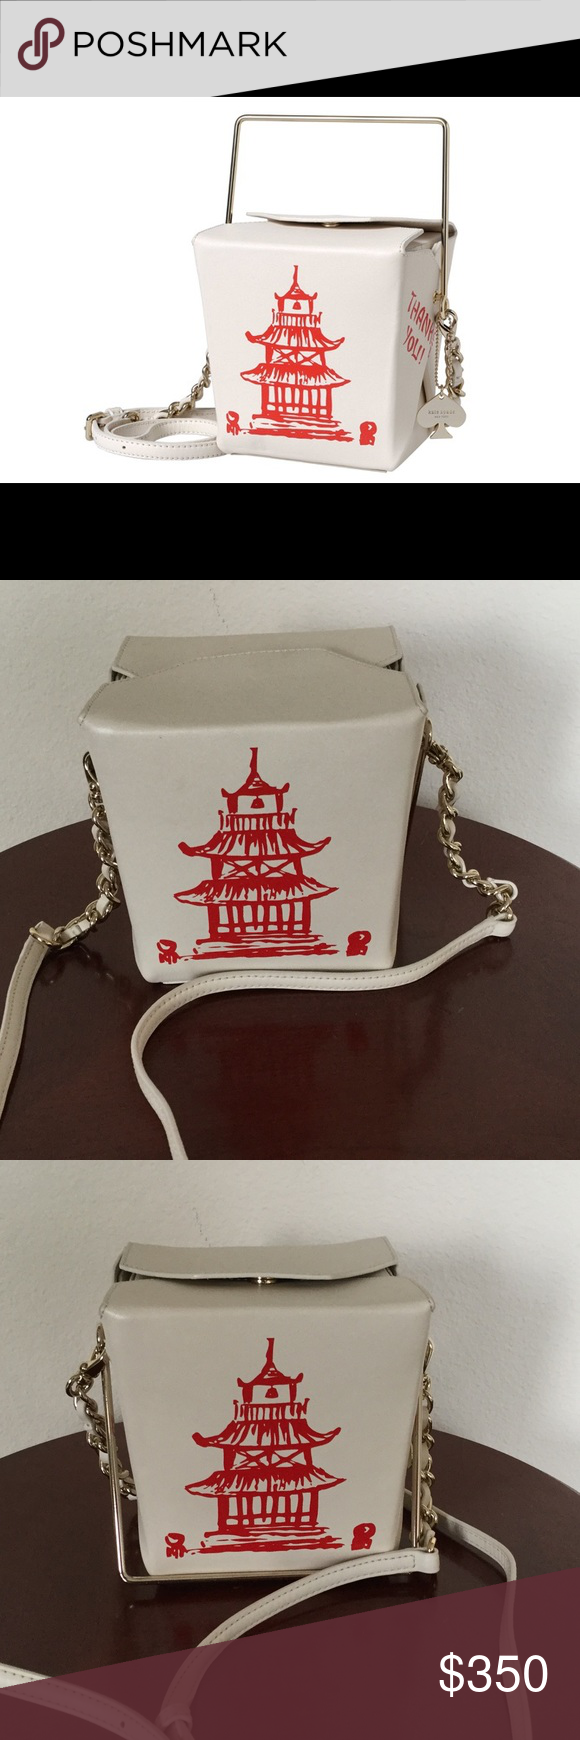 6d8b5325c98 Kate Spade Chinese Takeout Box Bag RARE - Gently loved, excellent  condition,